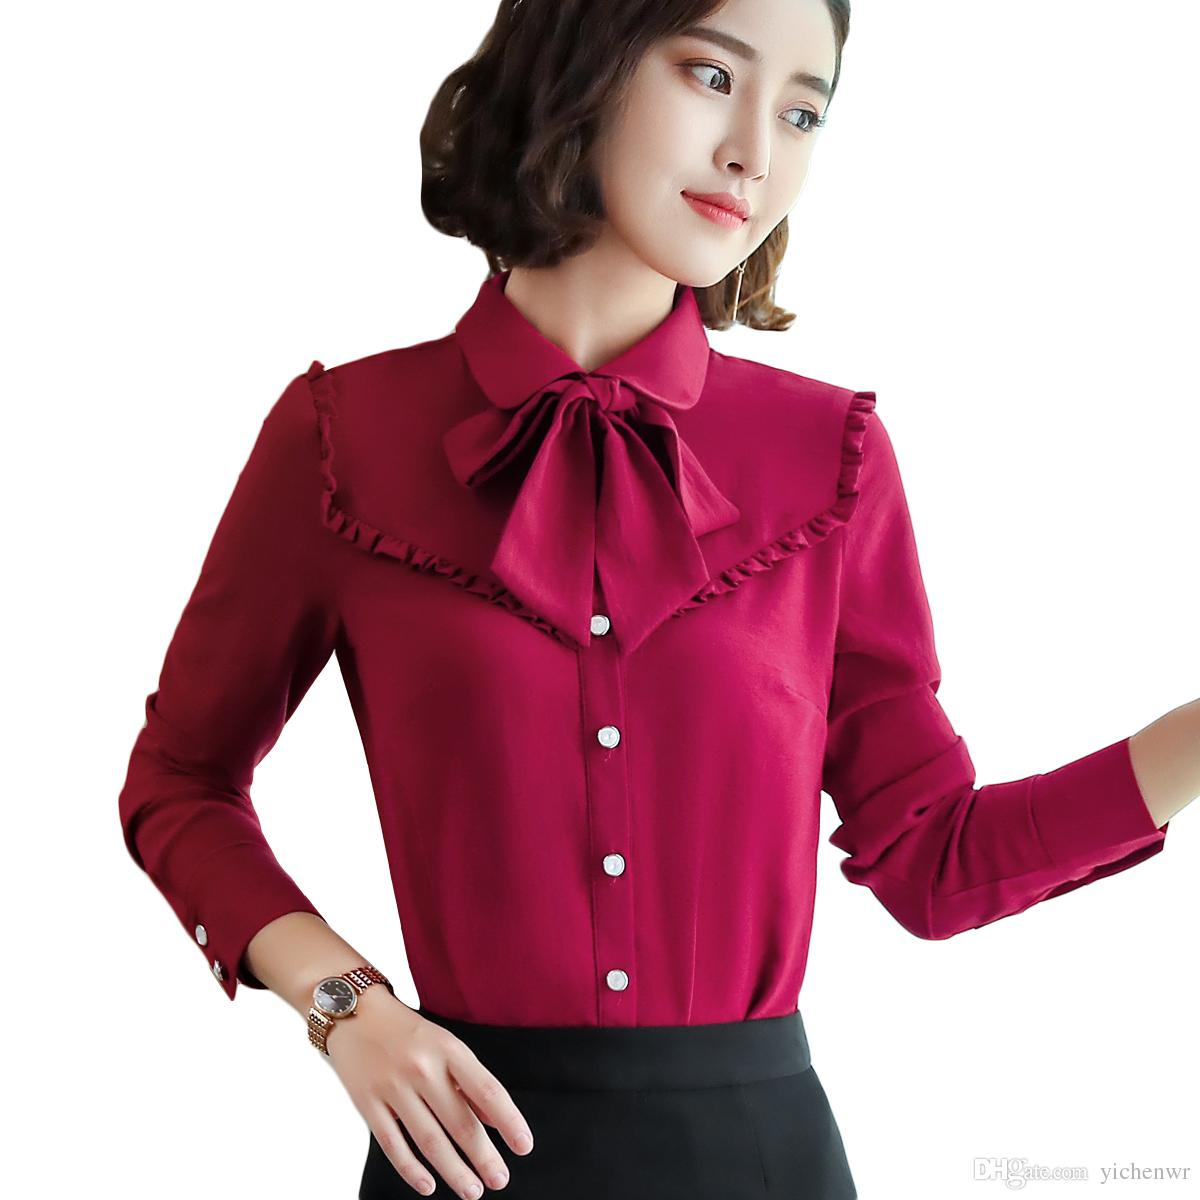 c08c0714d0f9 2019 New Casual Blouse 2018 Work Wear Bow Tie Women Red Orange Blue White  Black Shirts Female Ruffle Blouse From Yichenwr